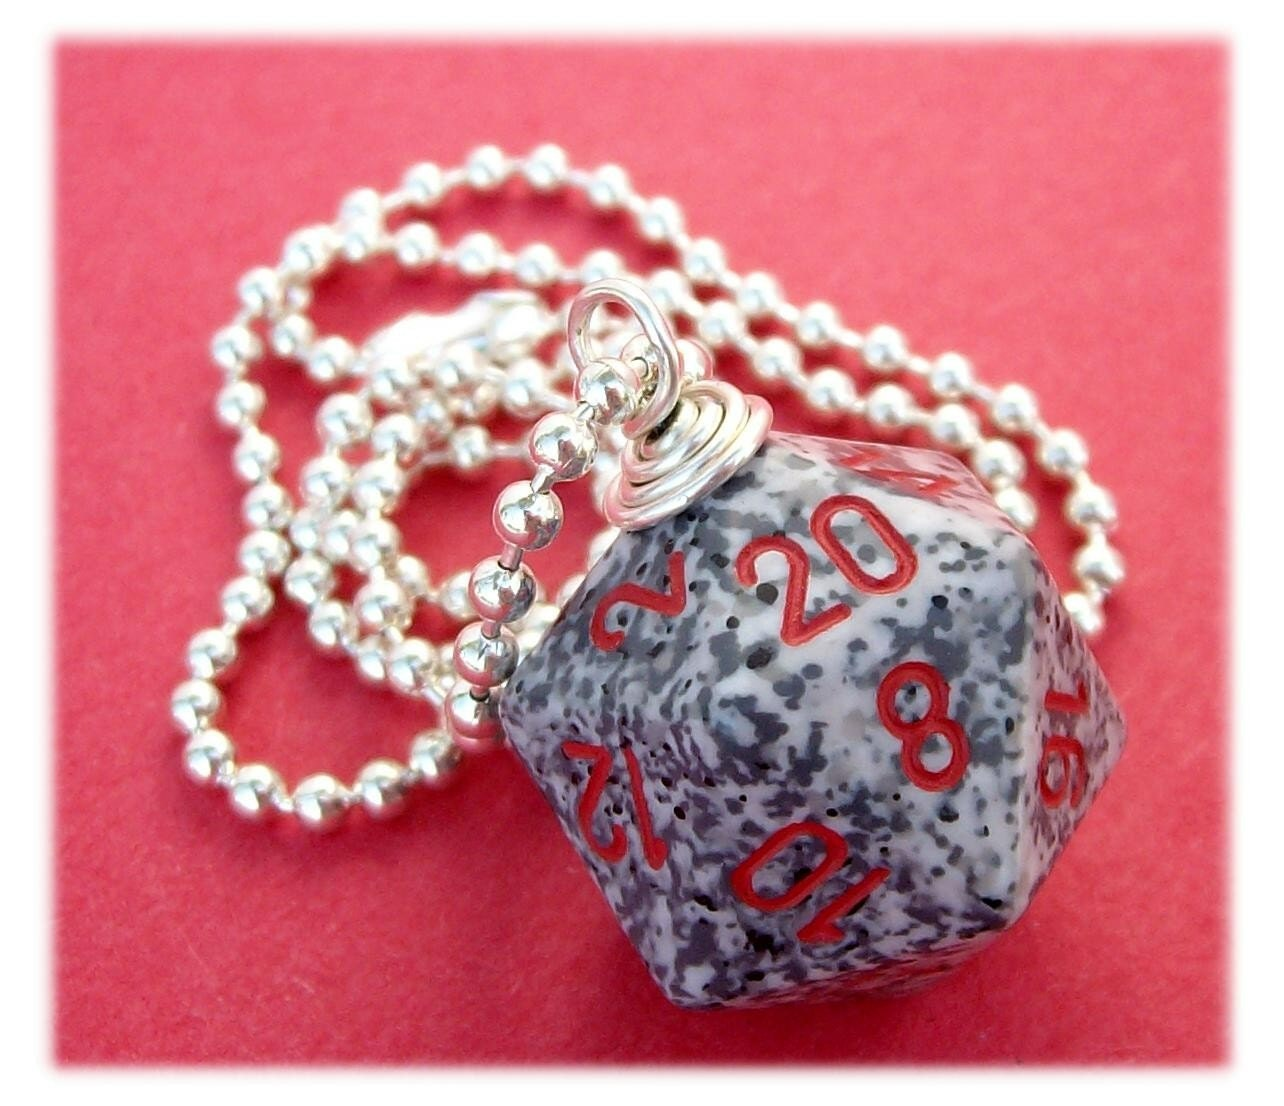 accessory, dice, die, dnd, dungeons dragons, game, geek, geekery, gray, jewelry, necklace, pawandclawdesigns, pendant, red